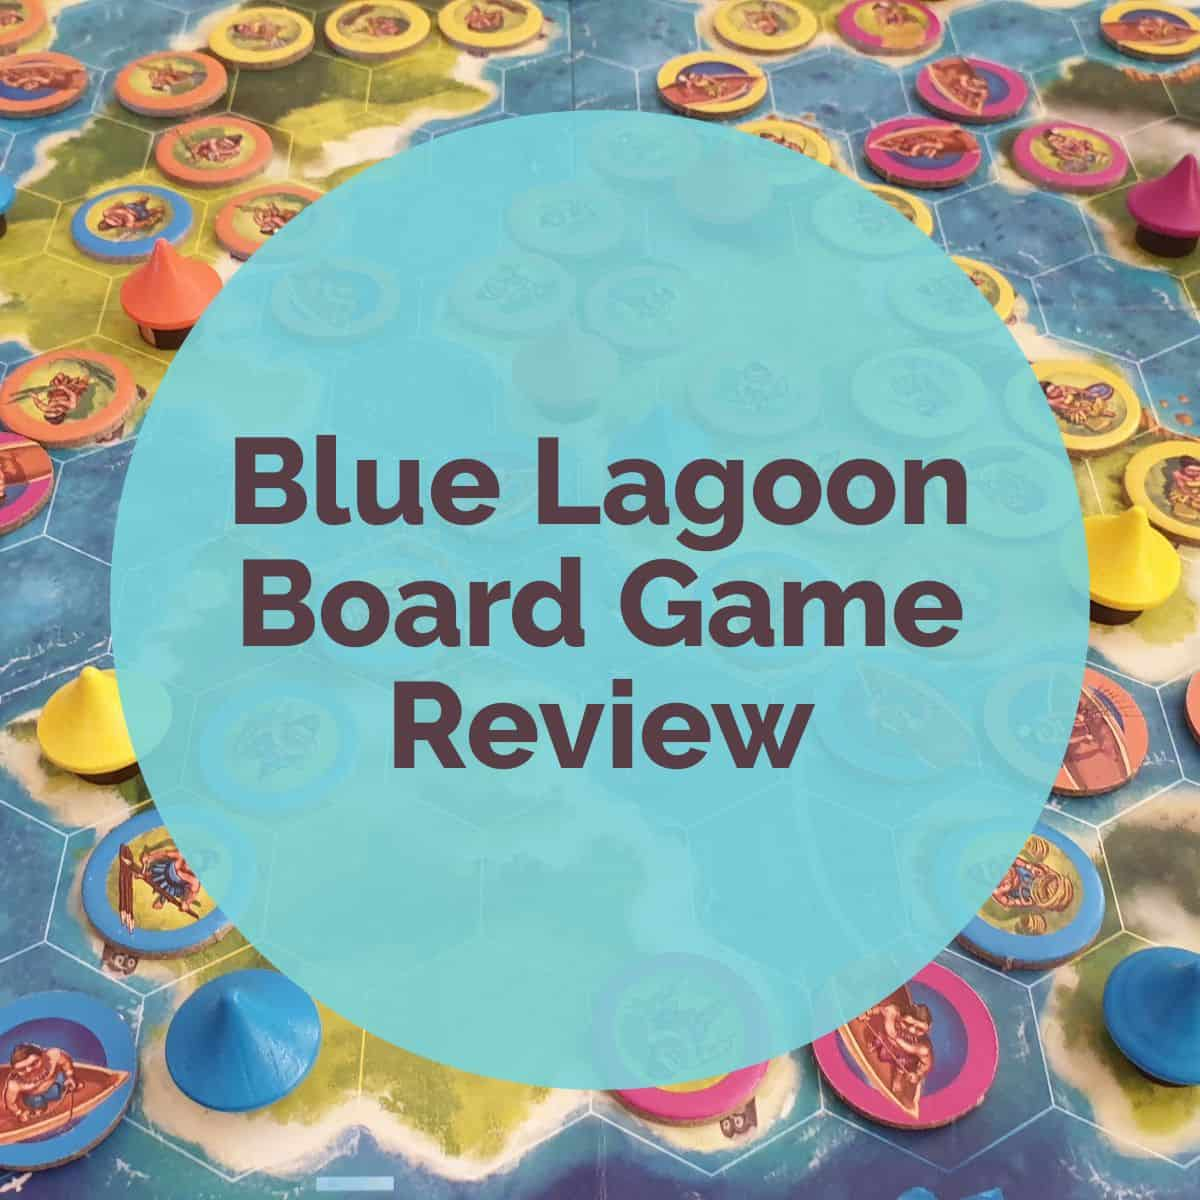 Blue Lagoon Board Game Review